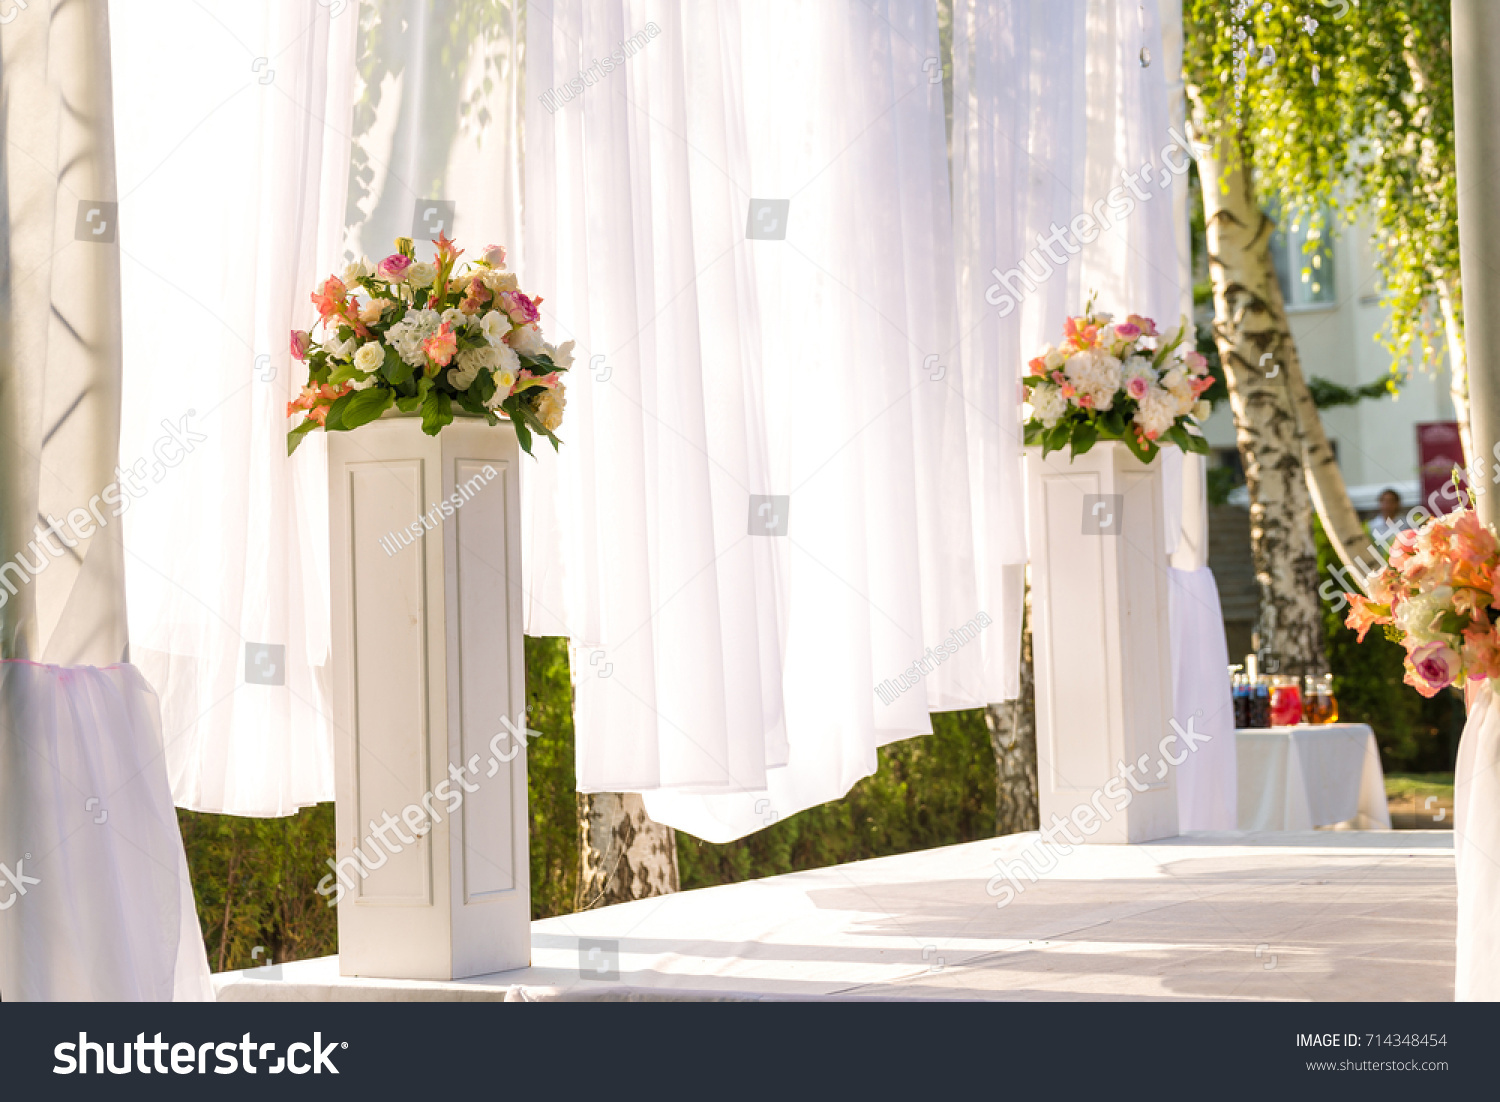 Floral Wedding Decorations Pink White Garland Stock Photo (Royalty ...